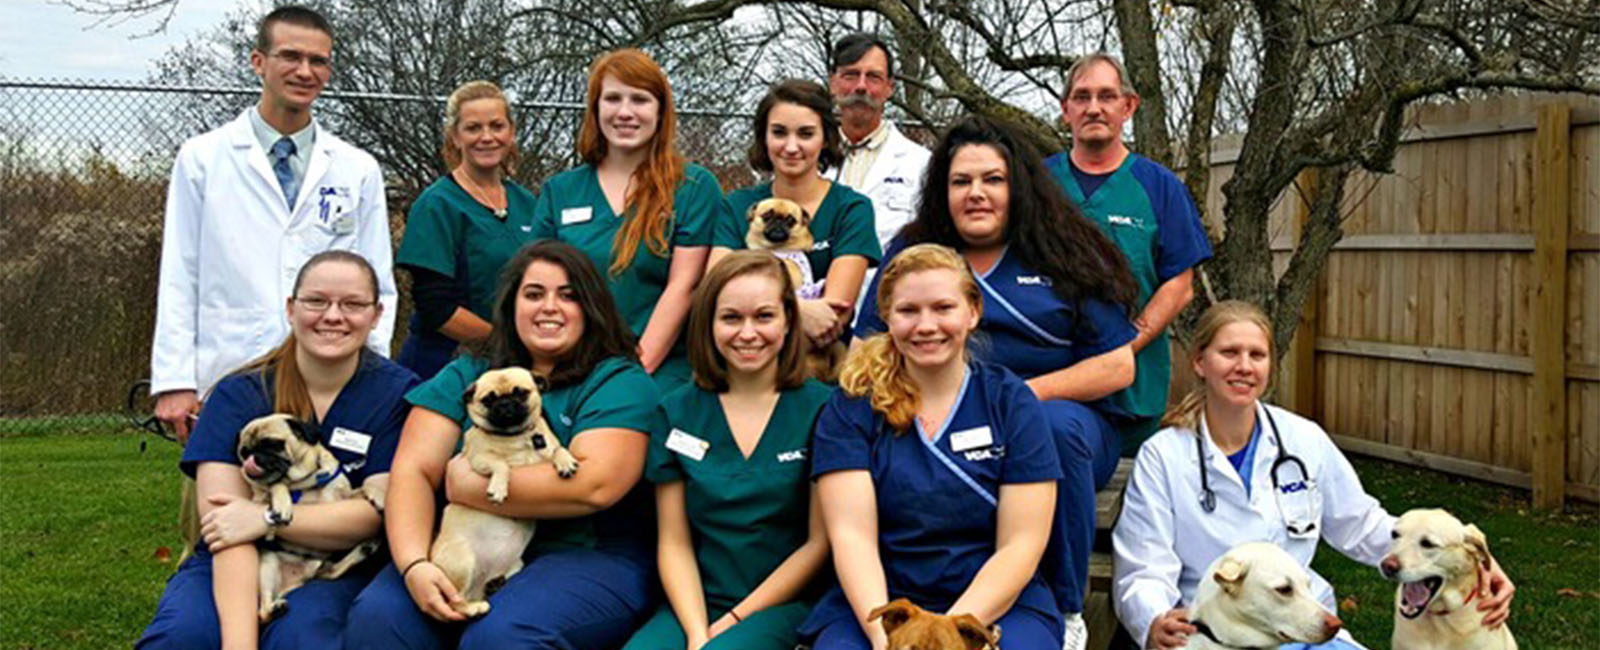 Team Picture of VCA Rome Animal Hospital